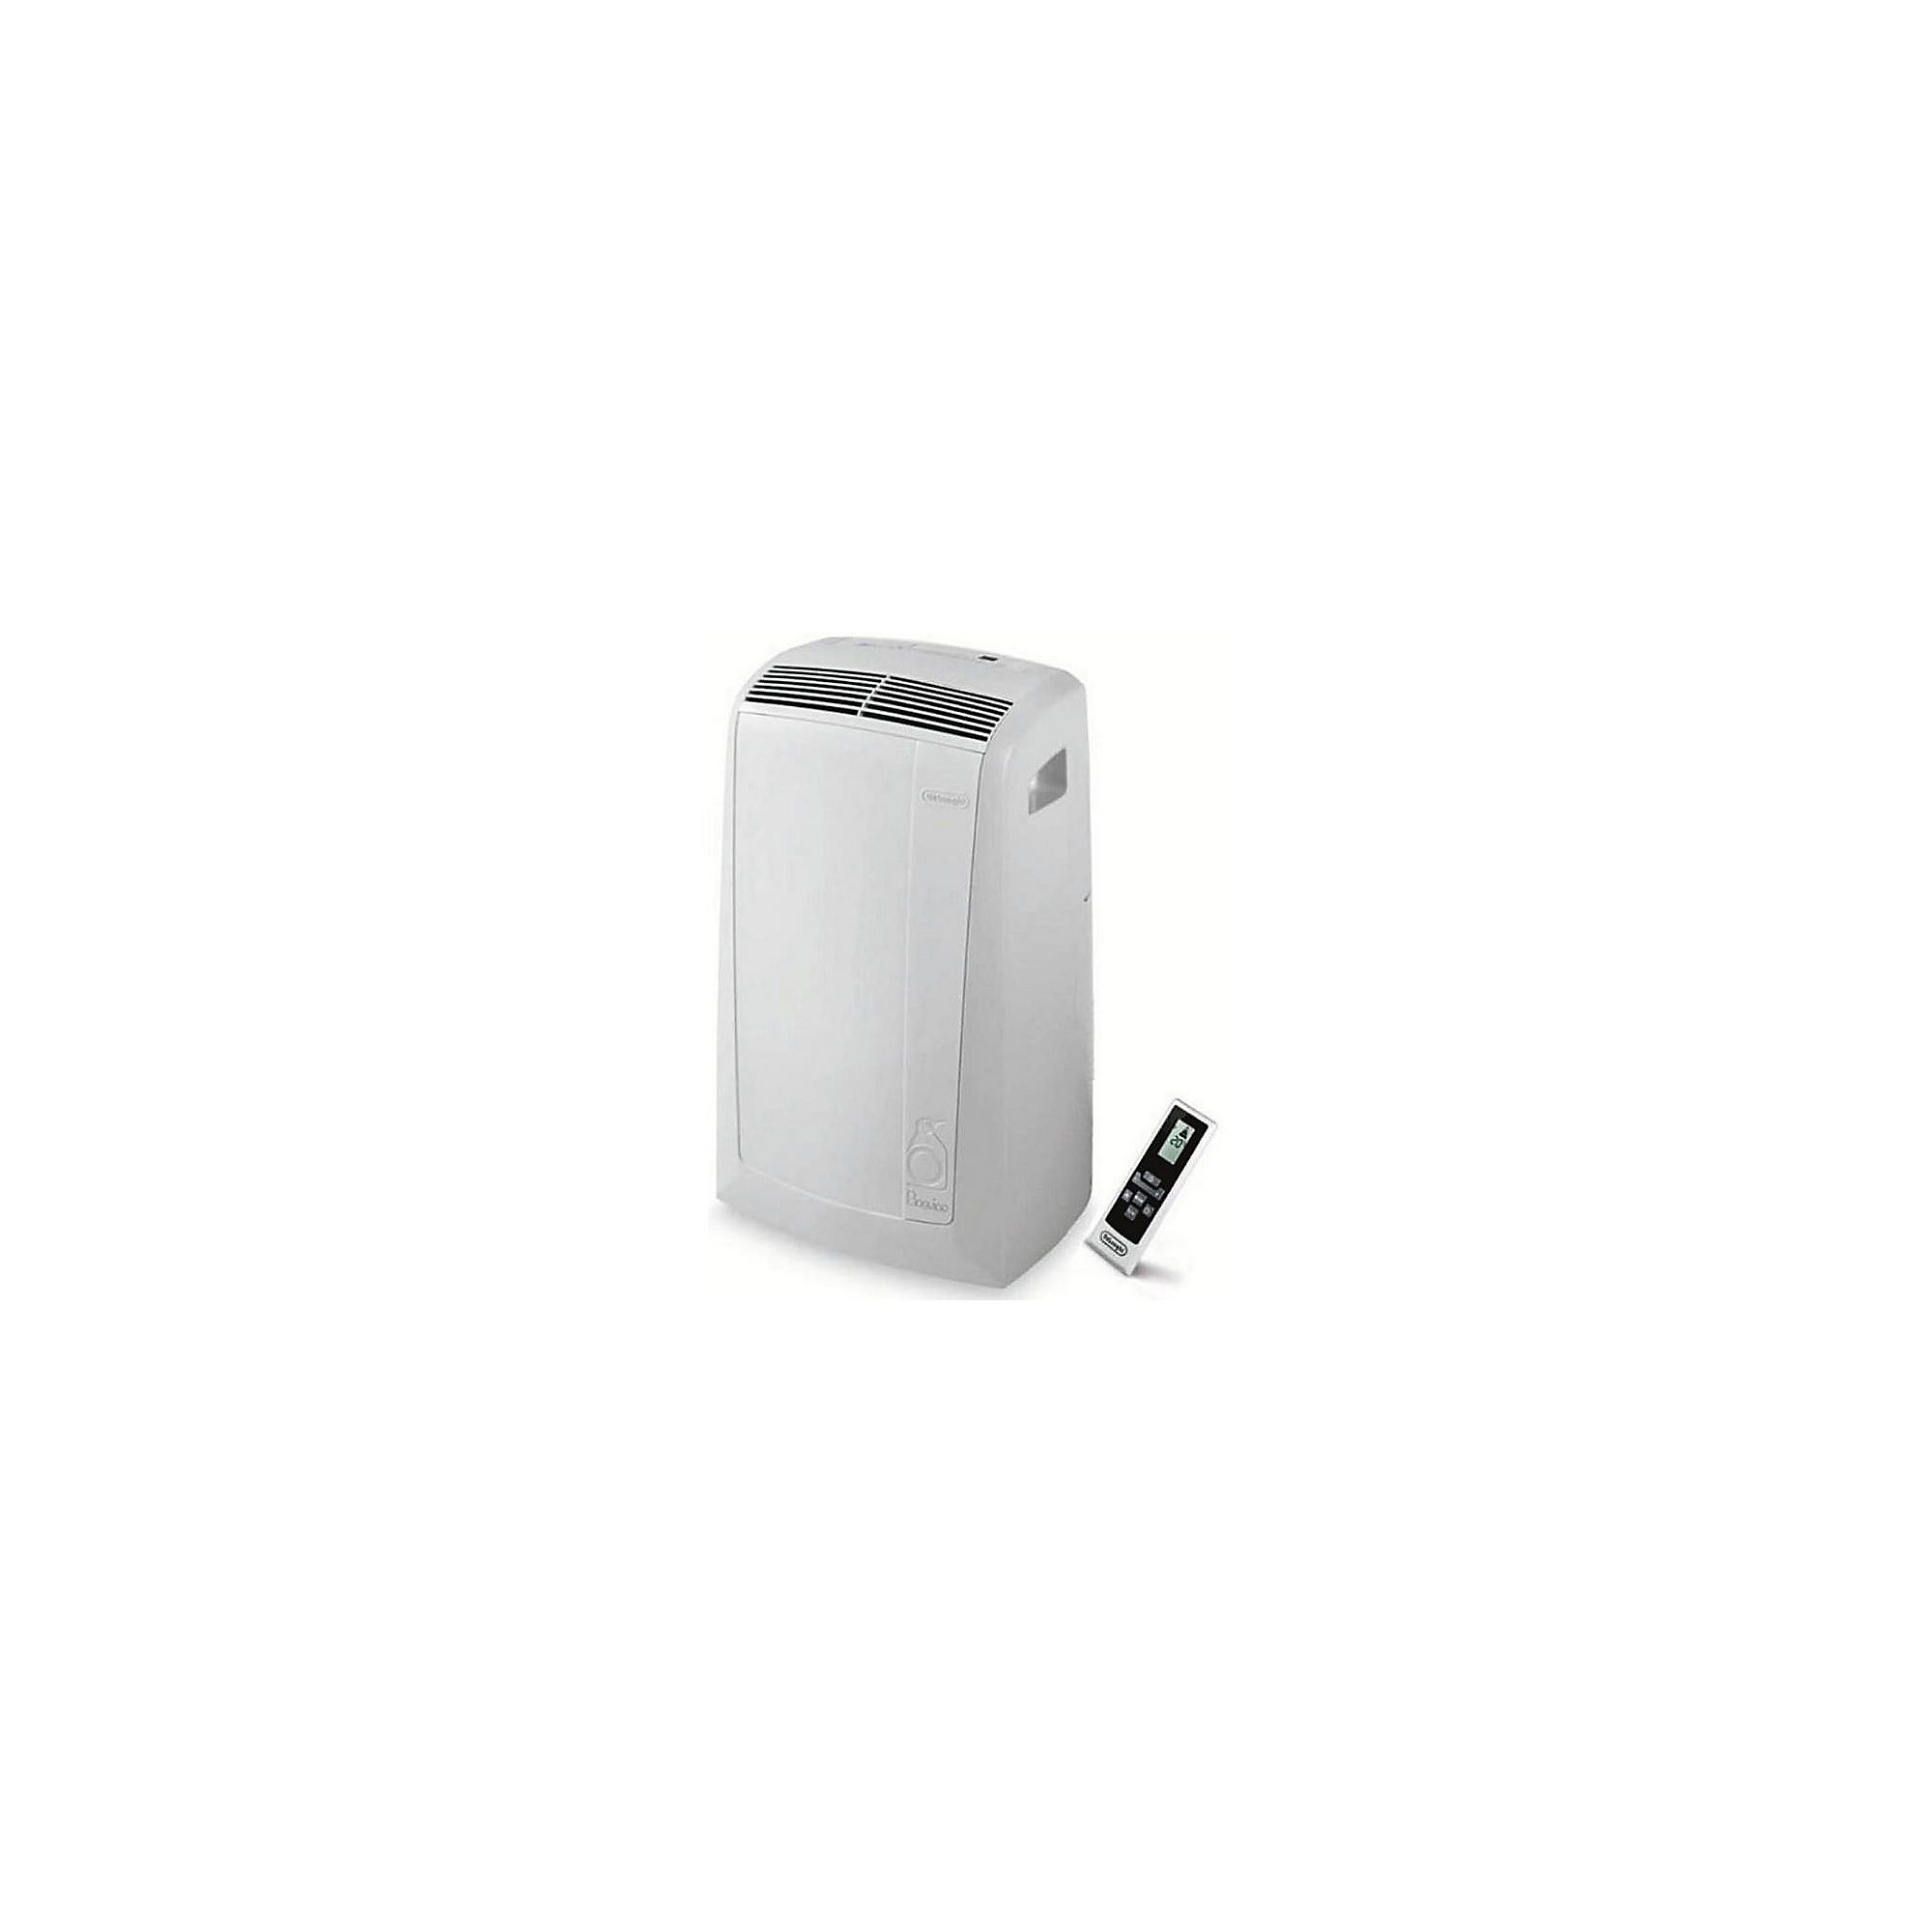 DeLonghi PAC N76 mobiles Klimagerät Pinguino Luft/Luft A